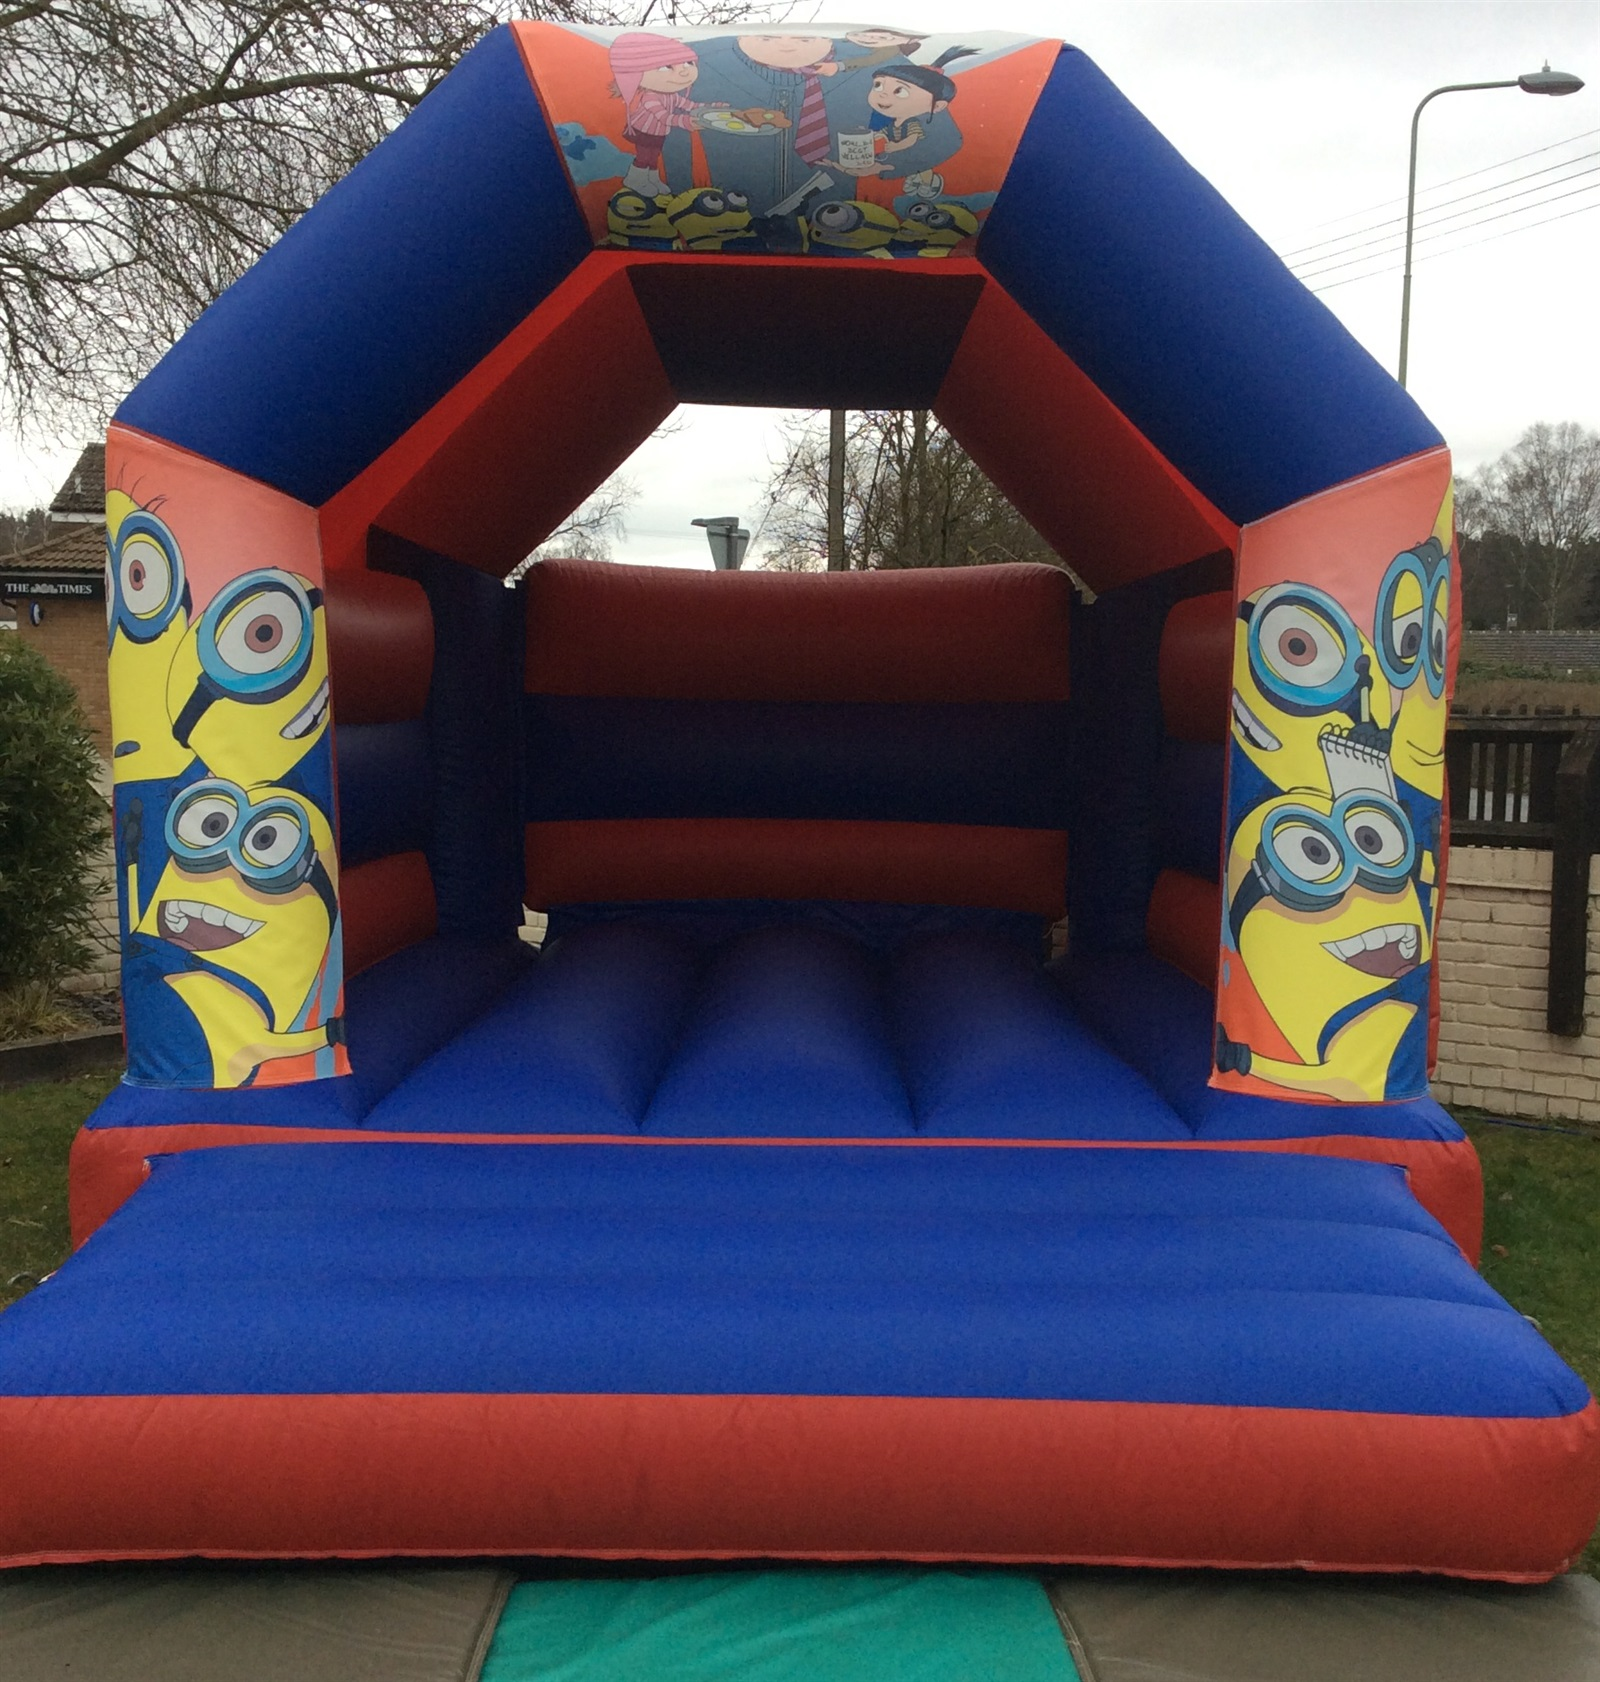 Inflatable Slide Hire Uk: Bouncy Castle Hire And Soft Play Hire Now